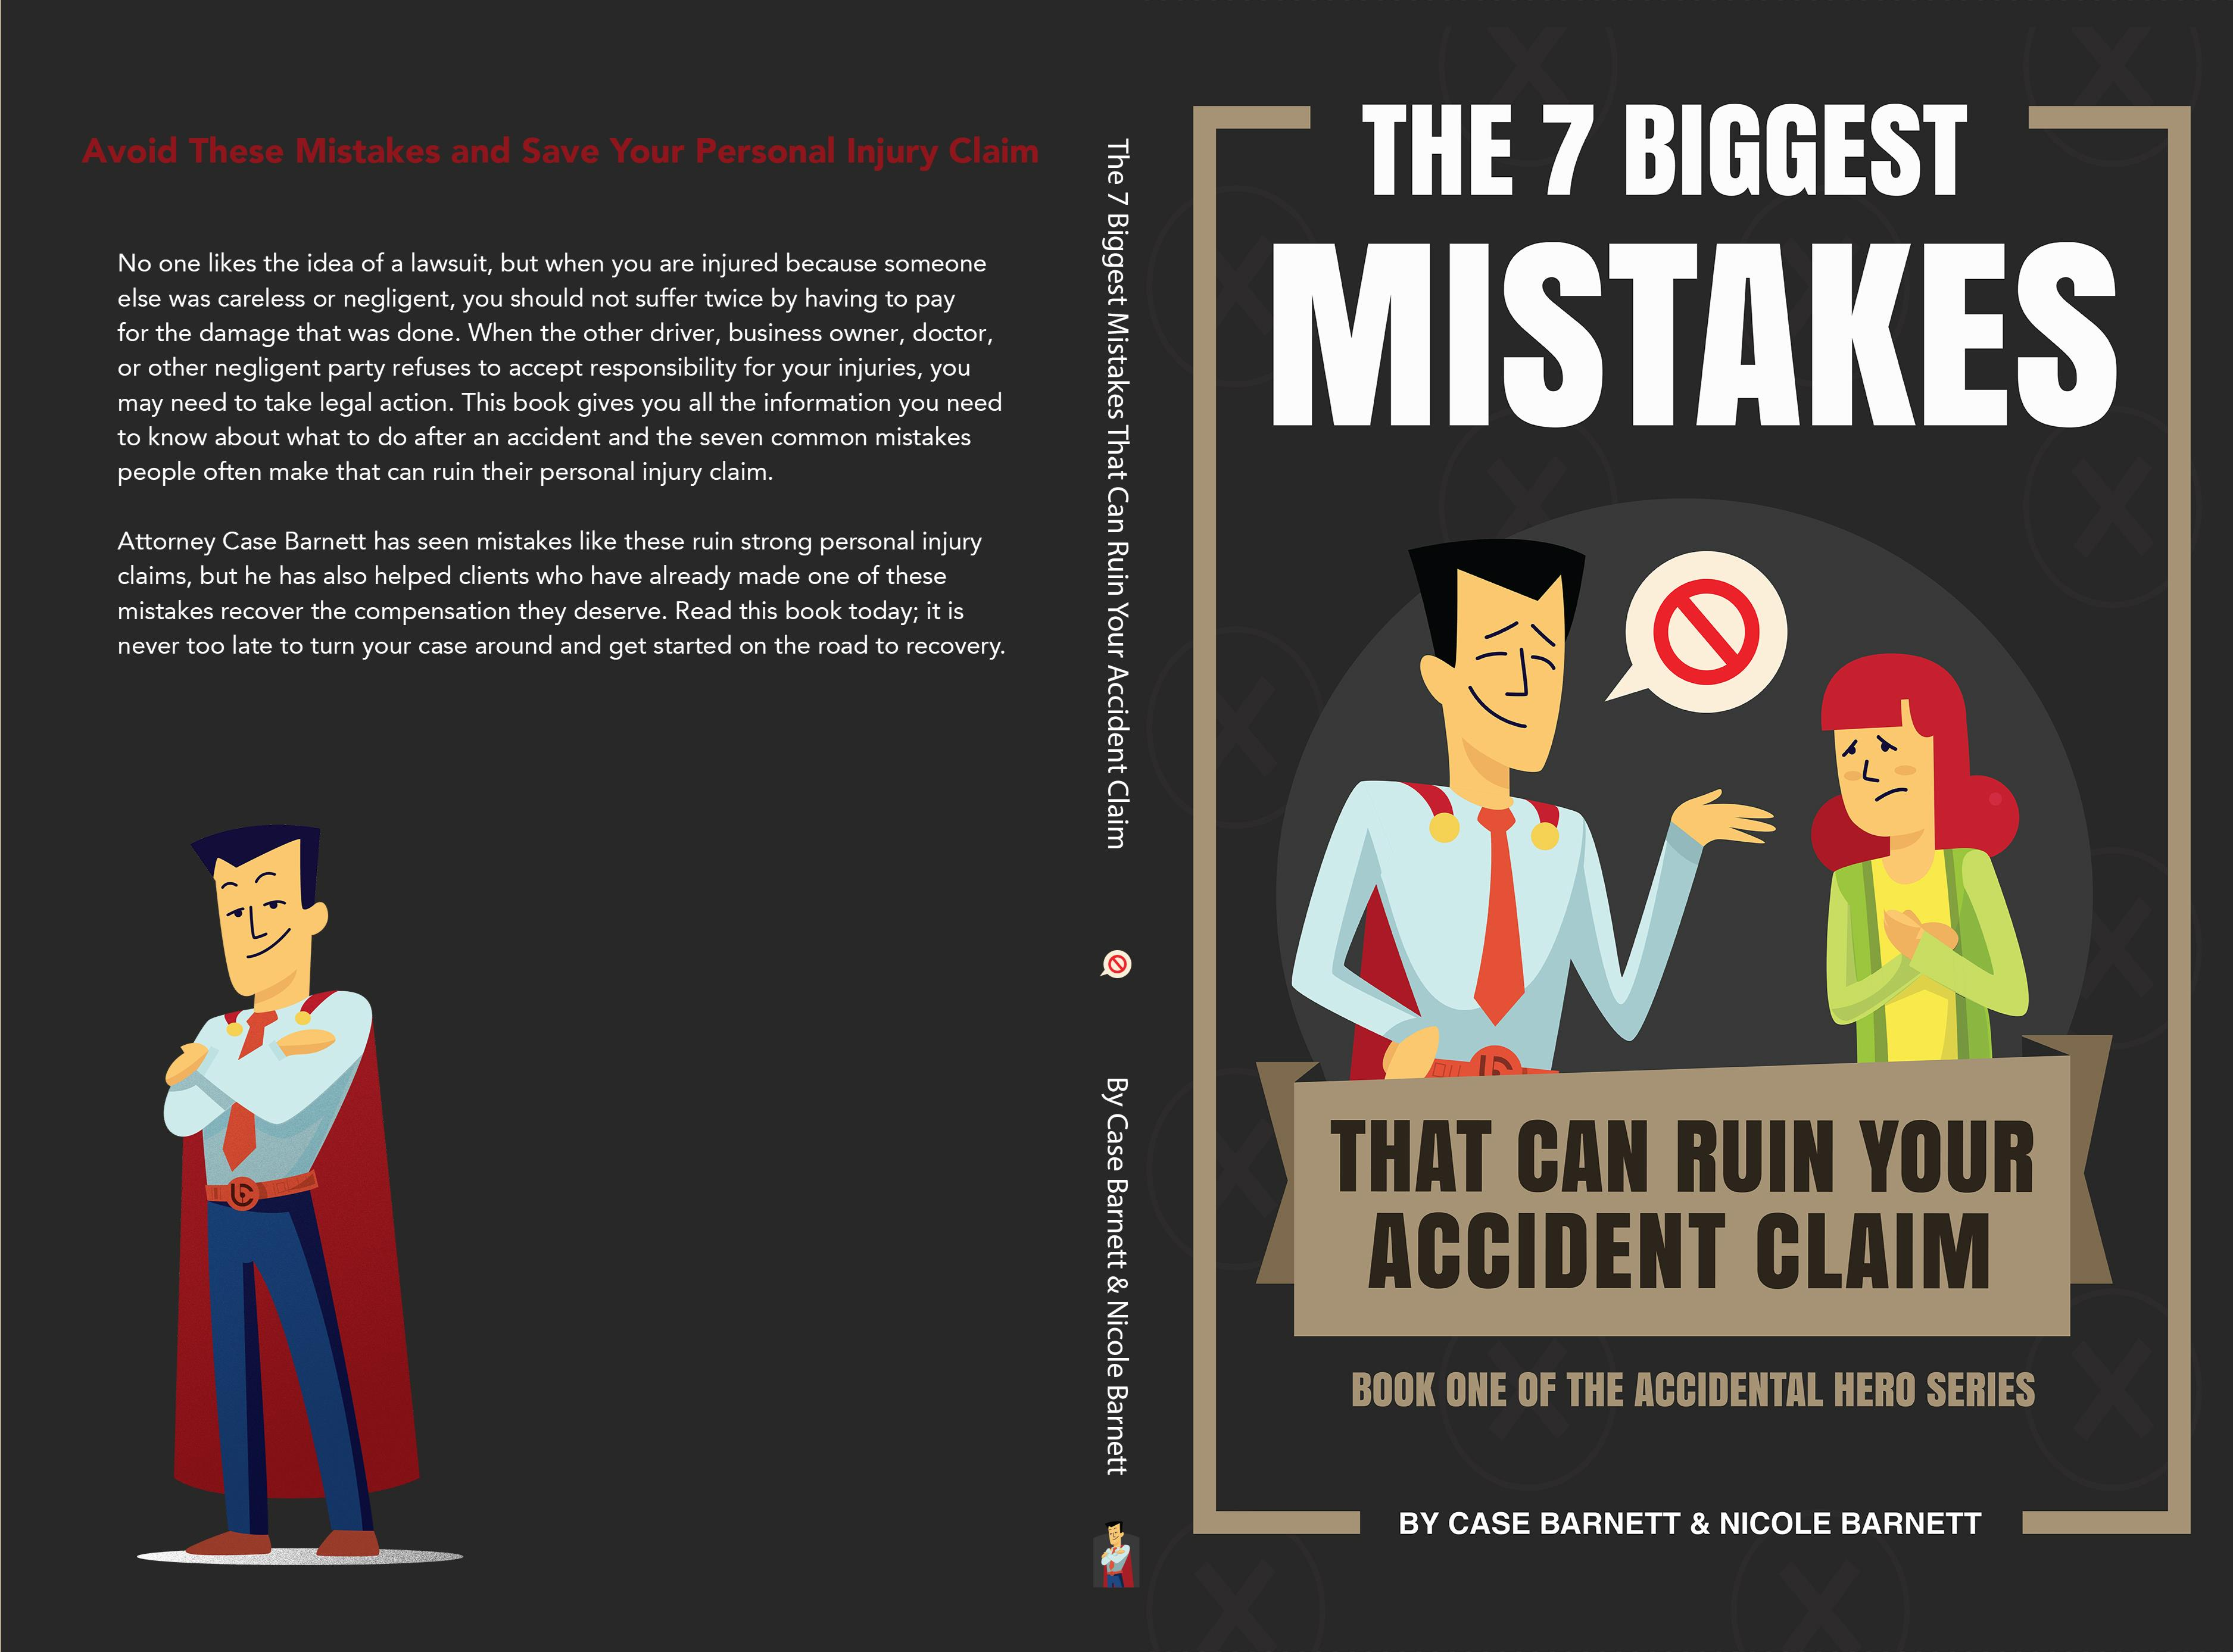 The 7 Biggest Mistakes That Can Ruin Your Accident Claim cover image